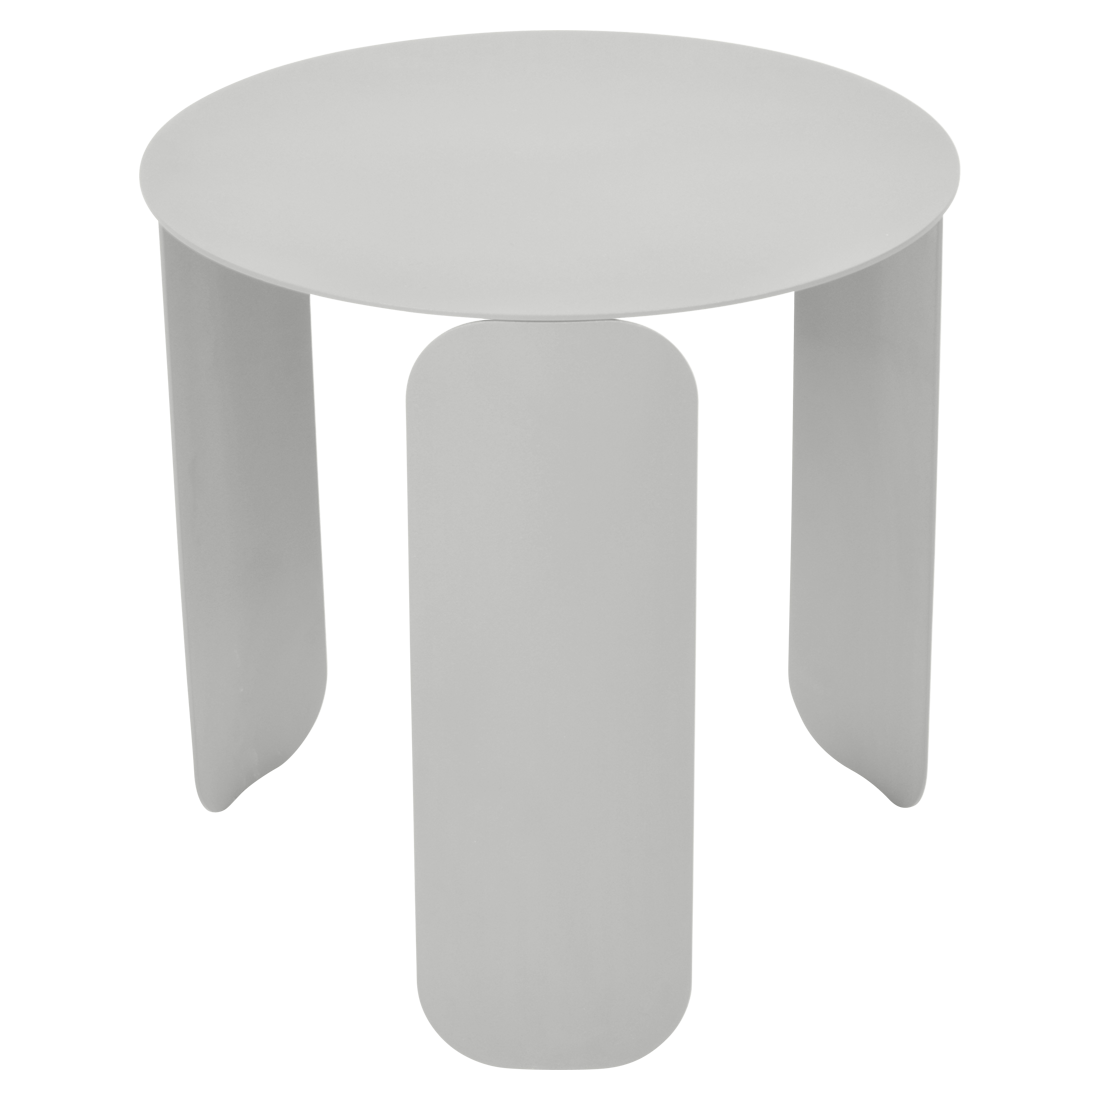 table basse design, table basse metal, table basse fermob, table basse gris